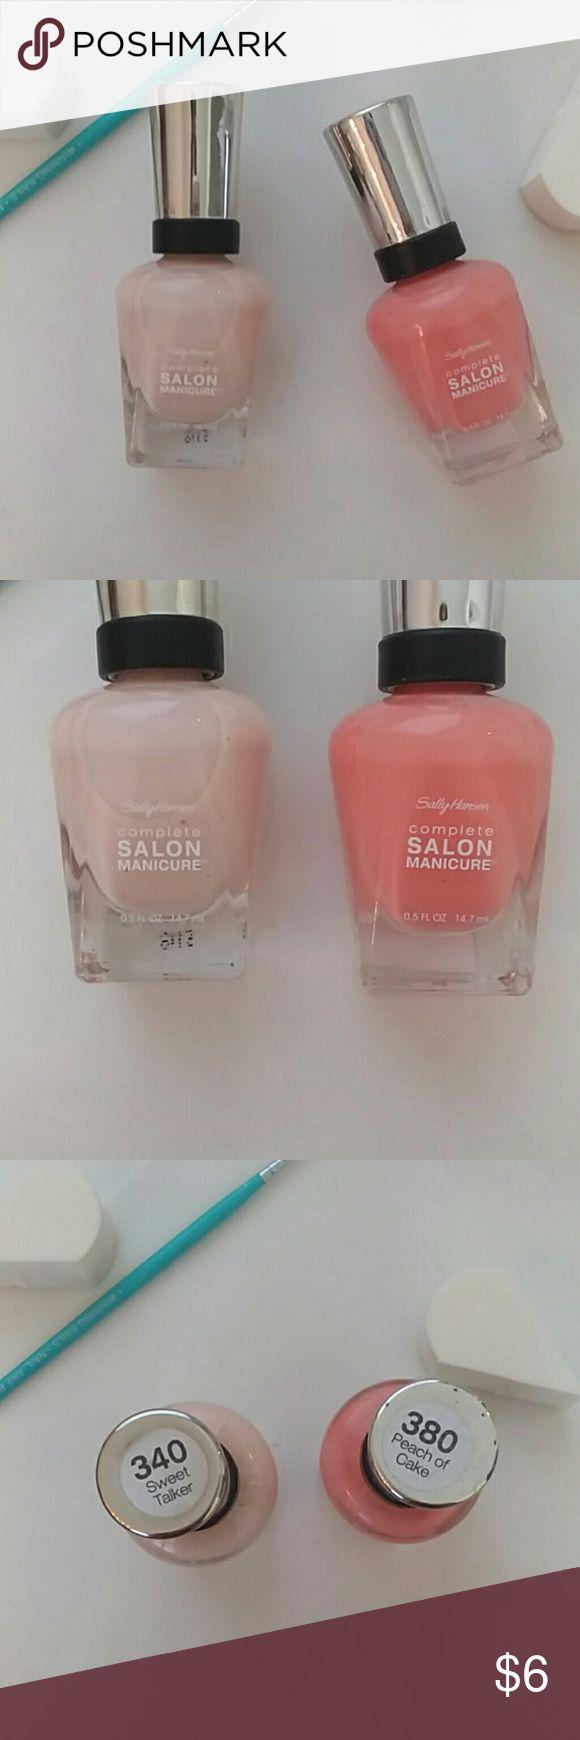 2 NAIL POLISH Salon Manicure brand, PEACH OF CAKE, a Light creamy orange, & SWEET TALKER, very pale pink, great for French Tips! Only used light Pink twice, Great condition! Salon Manicure Makeup